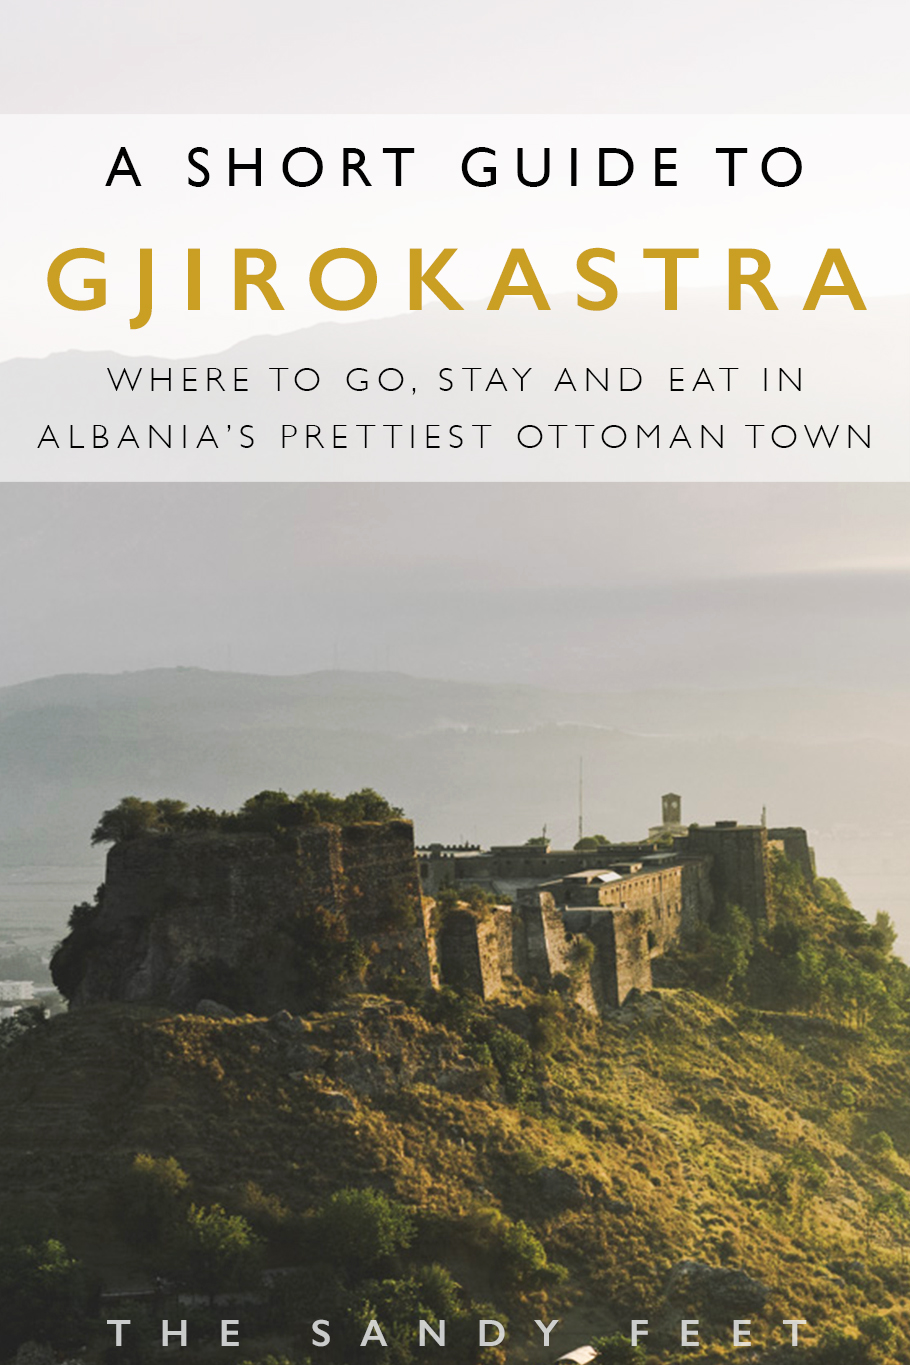 A Short Guide To The Best Things To Do In Gjirokaster: Where To Go, Stay And Eat In Albania's Prettiest Ottoman Town.